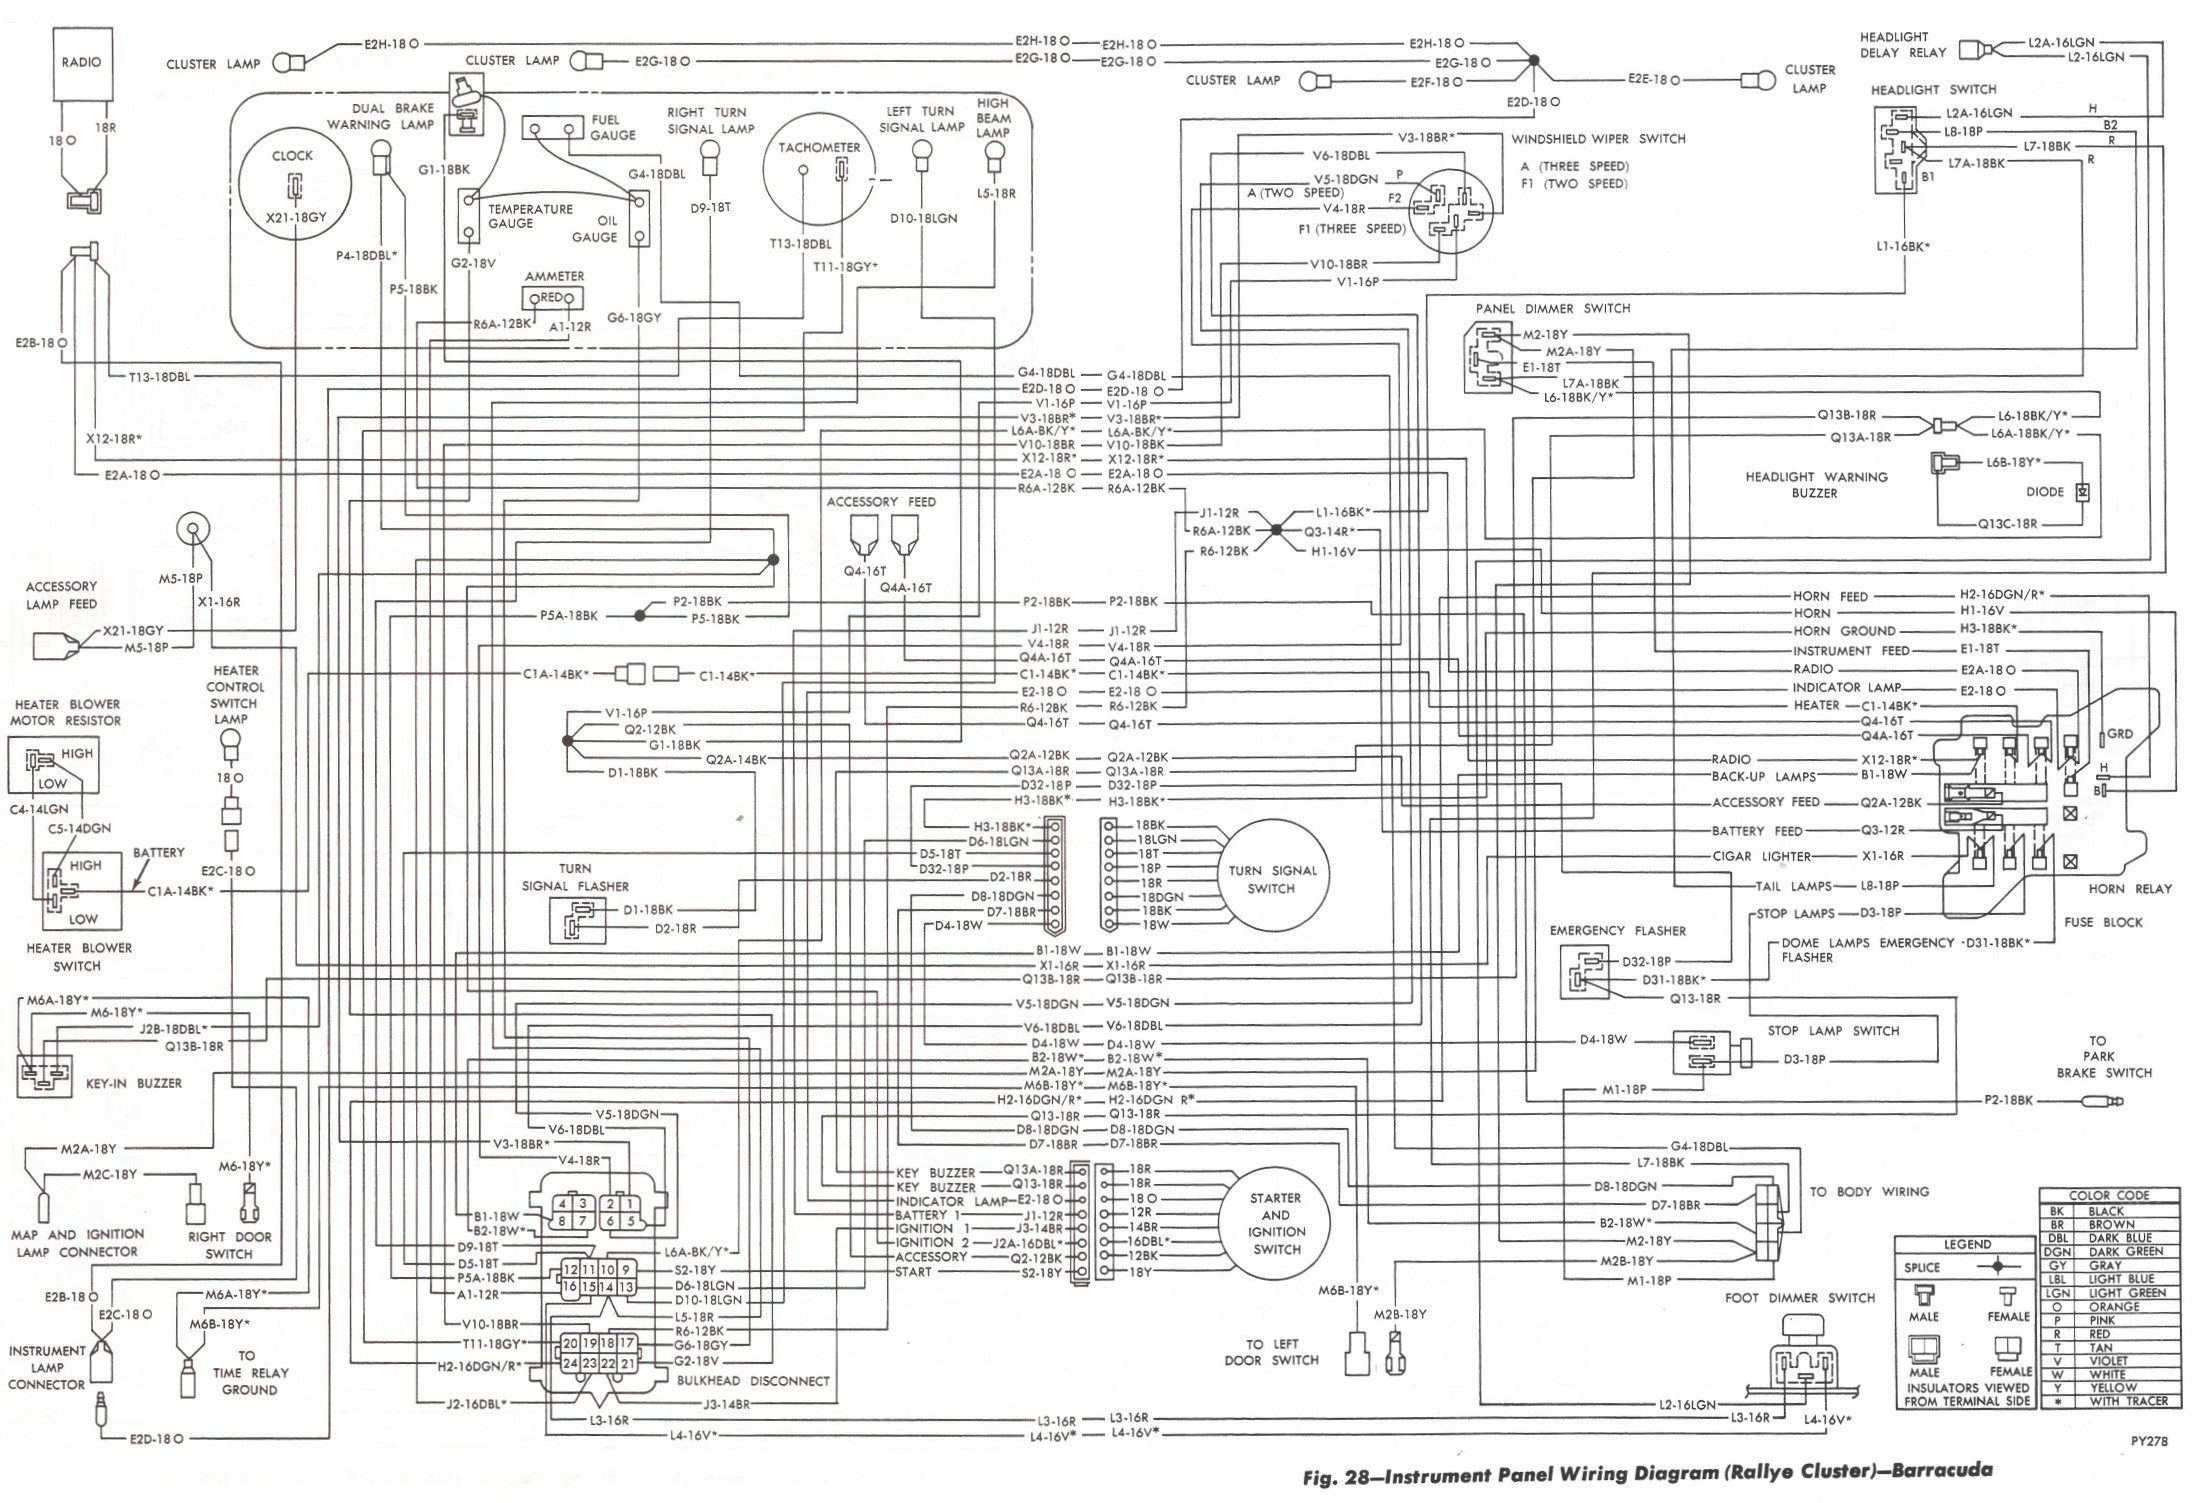 1970 Cuda Engine Wiring Diagram Opinions About Regulator For Chevelle Dodge Challenger T A Diagrams Free Image User Manual Download 1971 Dash Chevy Truck